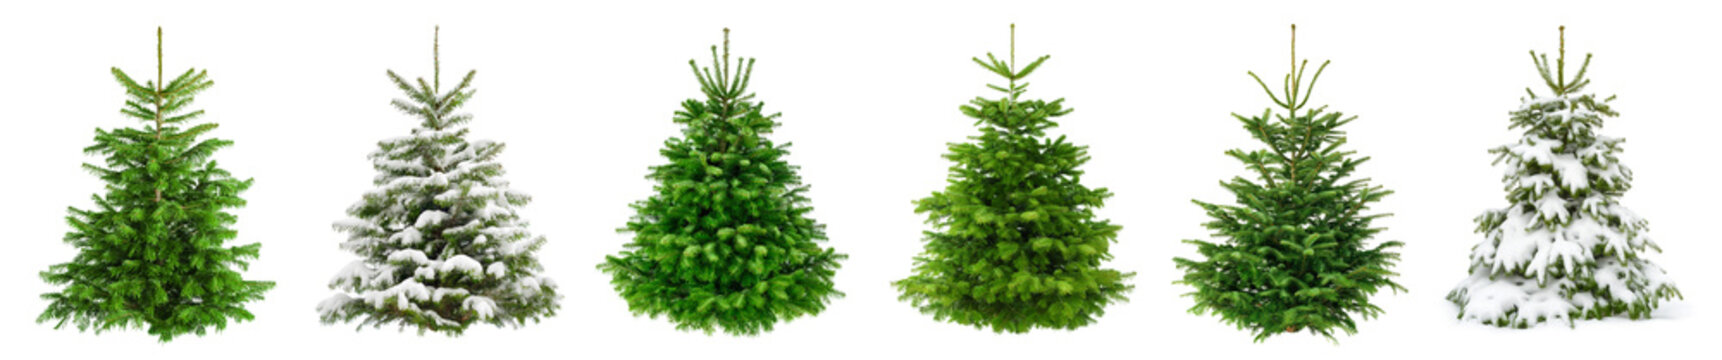 Set of 6 studio shots of fresh gorgeous fir trees in lush green for Christmas, without ornaments, isolated on pure white